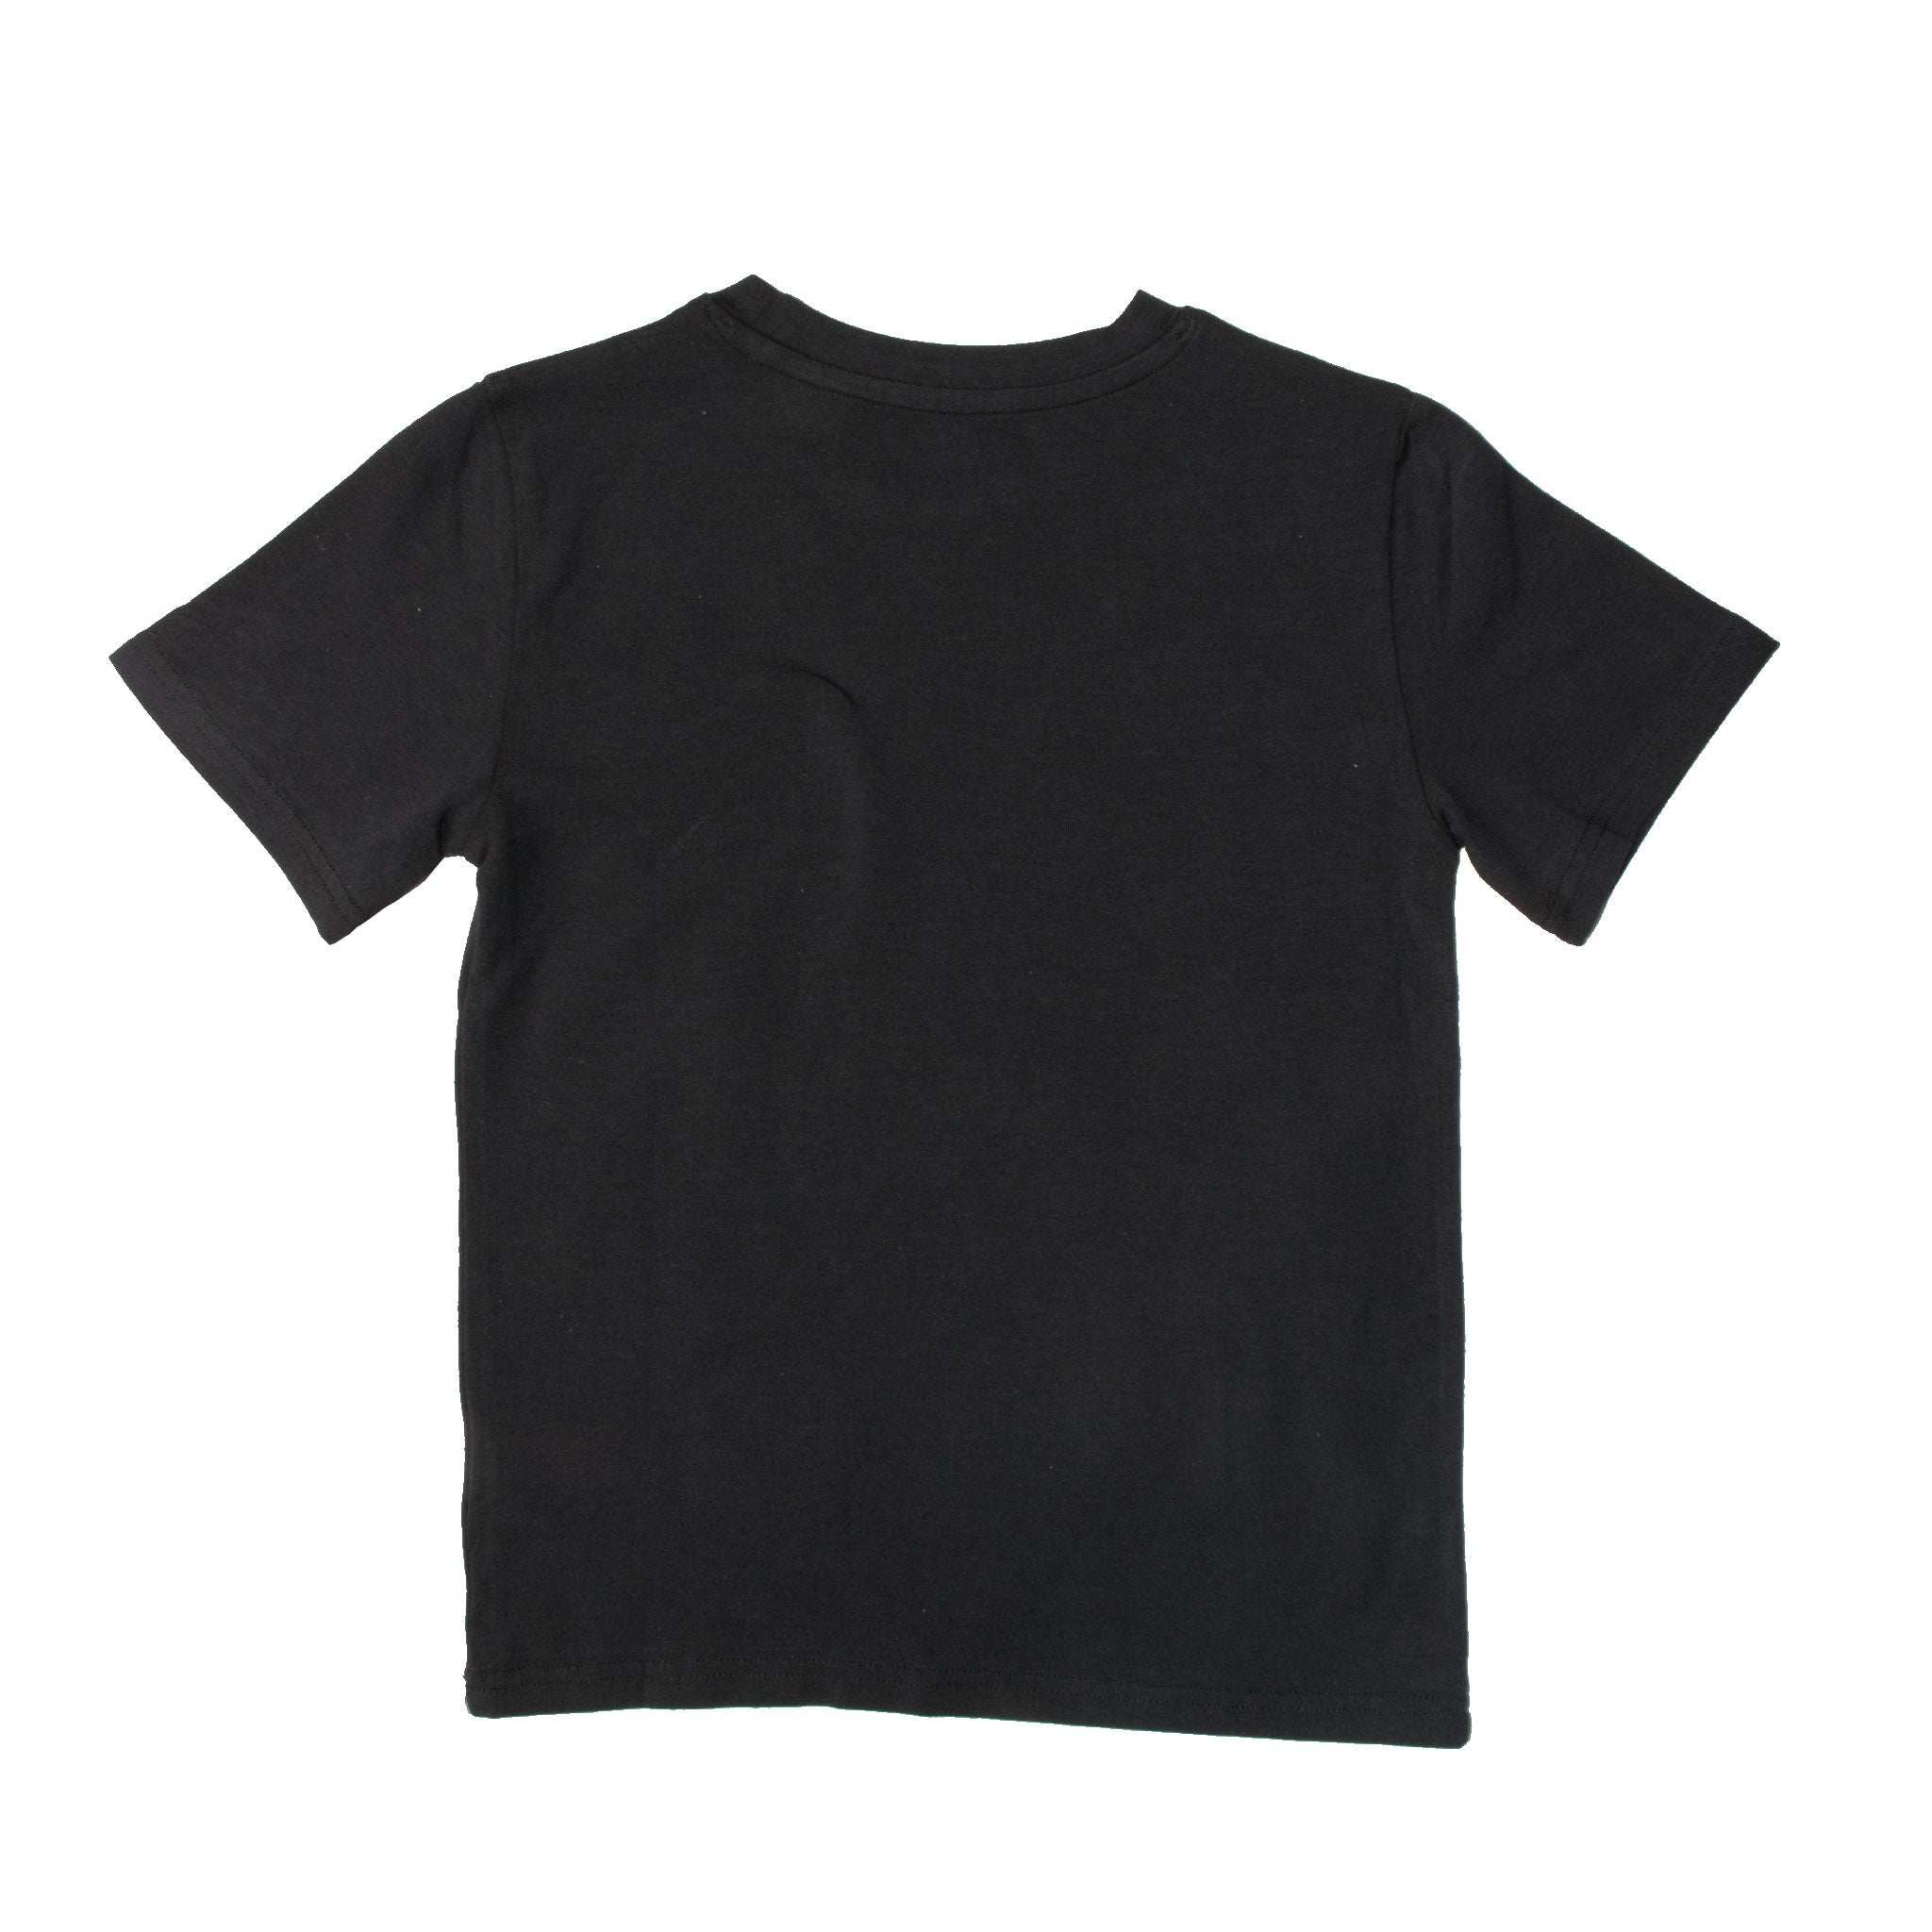 BOY'S S/S GRAPHIC TEE-BLACK-SSSS20KB-1116